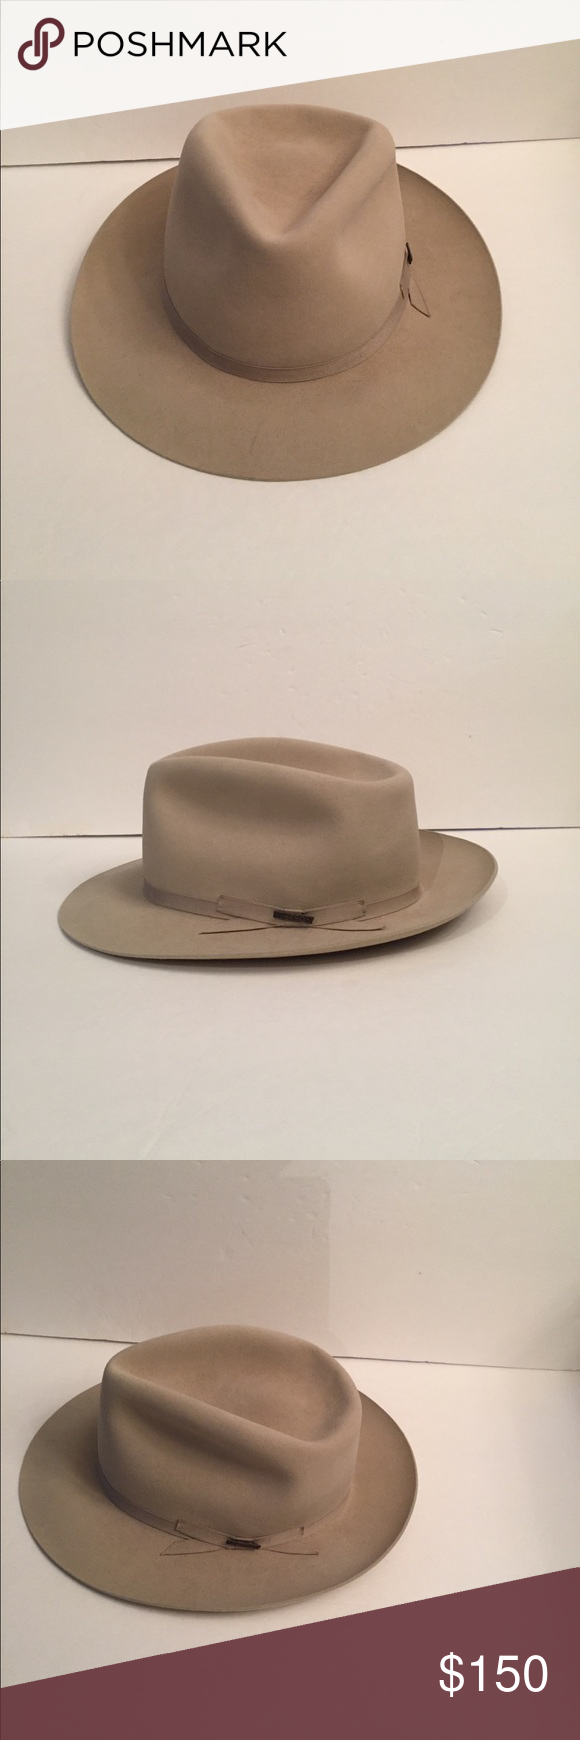 online store f6929 ef9df ... sweden mens moose river stetson felt fedora fishing hat product created  for anglers stetson moose 11464